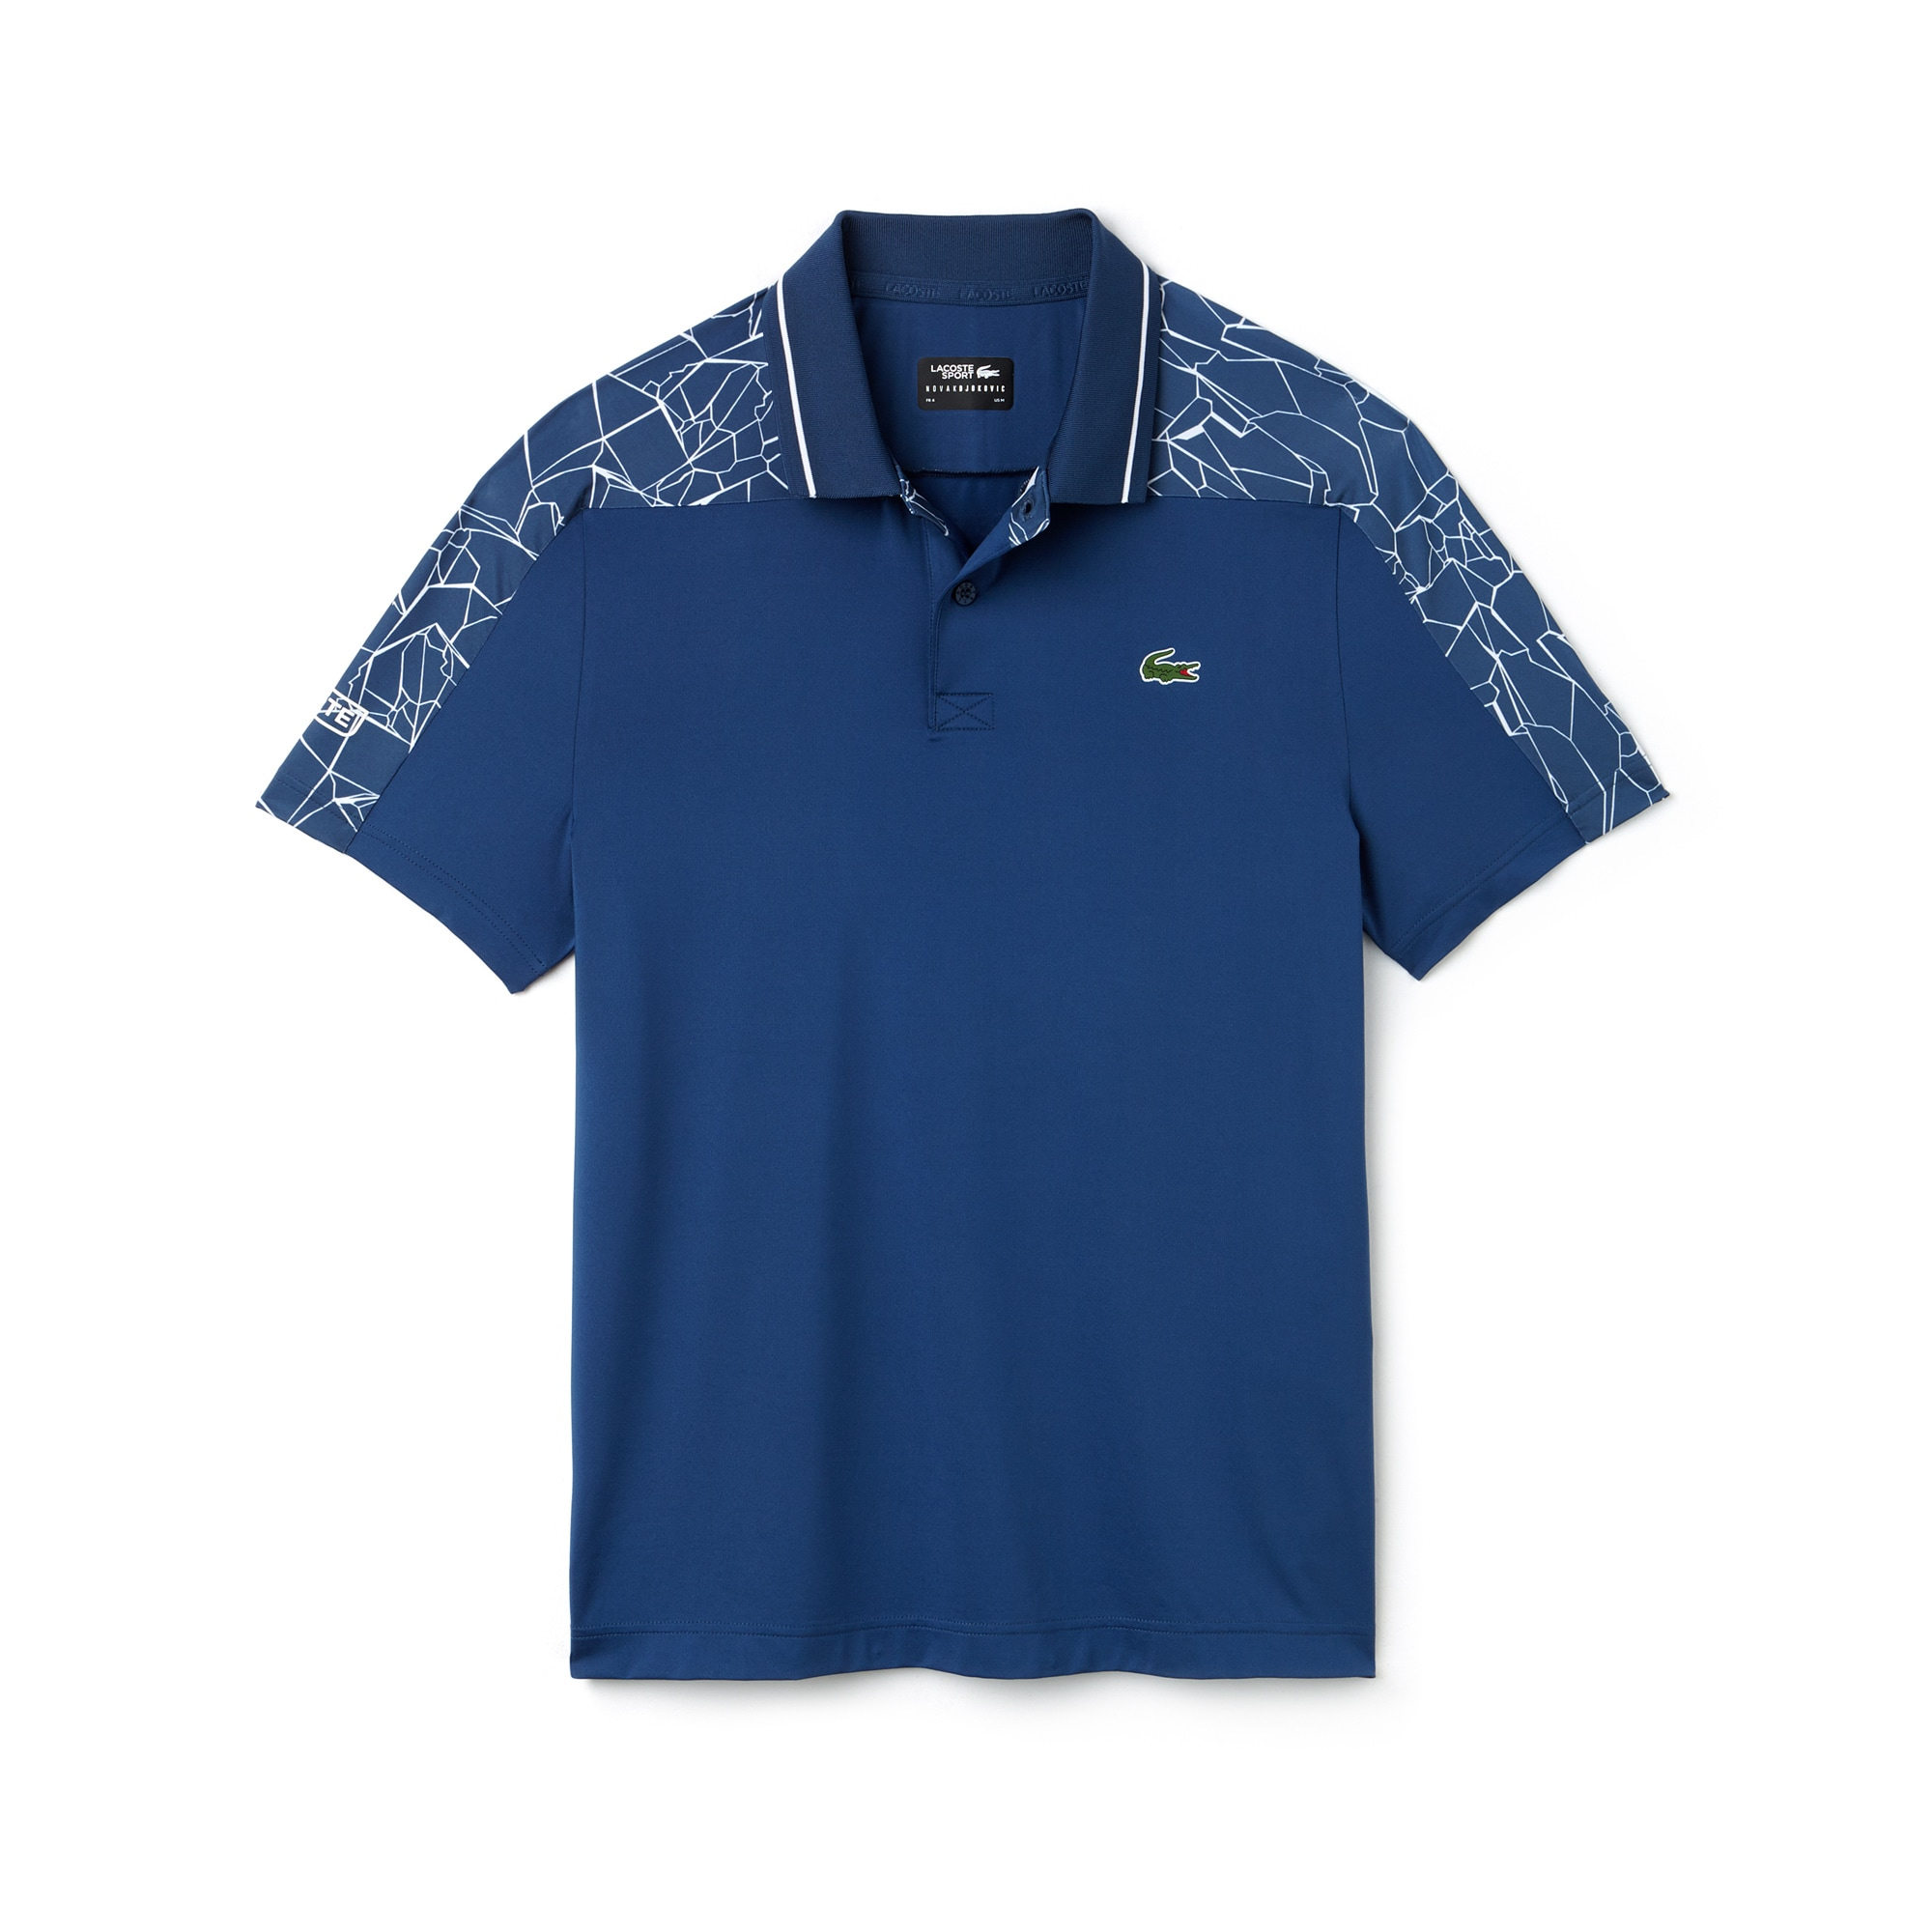 Men's SPORT Stretch Technical Jersey Polo - Lacoste x Novak Djokovic On Court Premium Edition